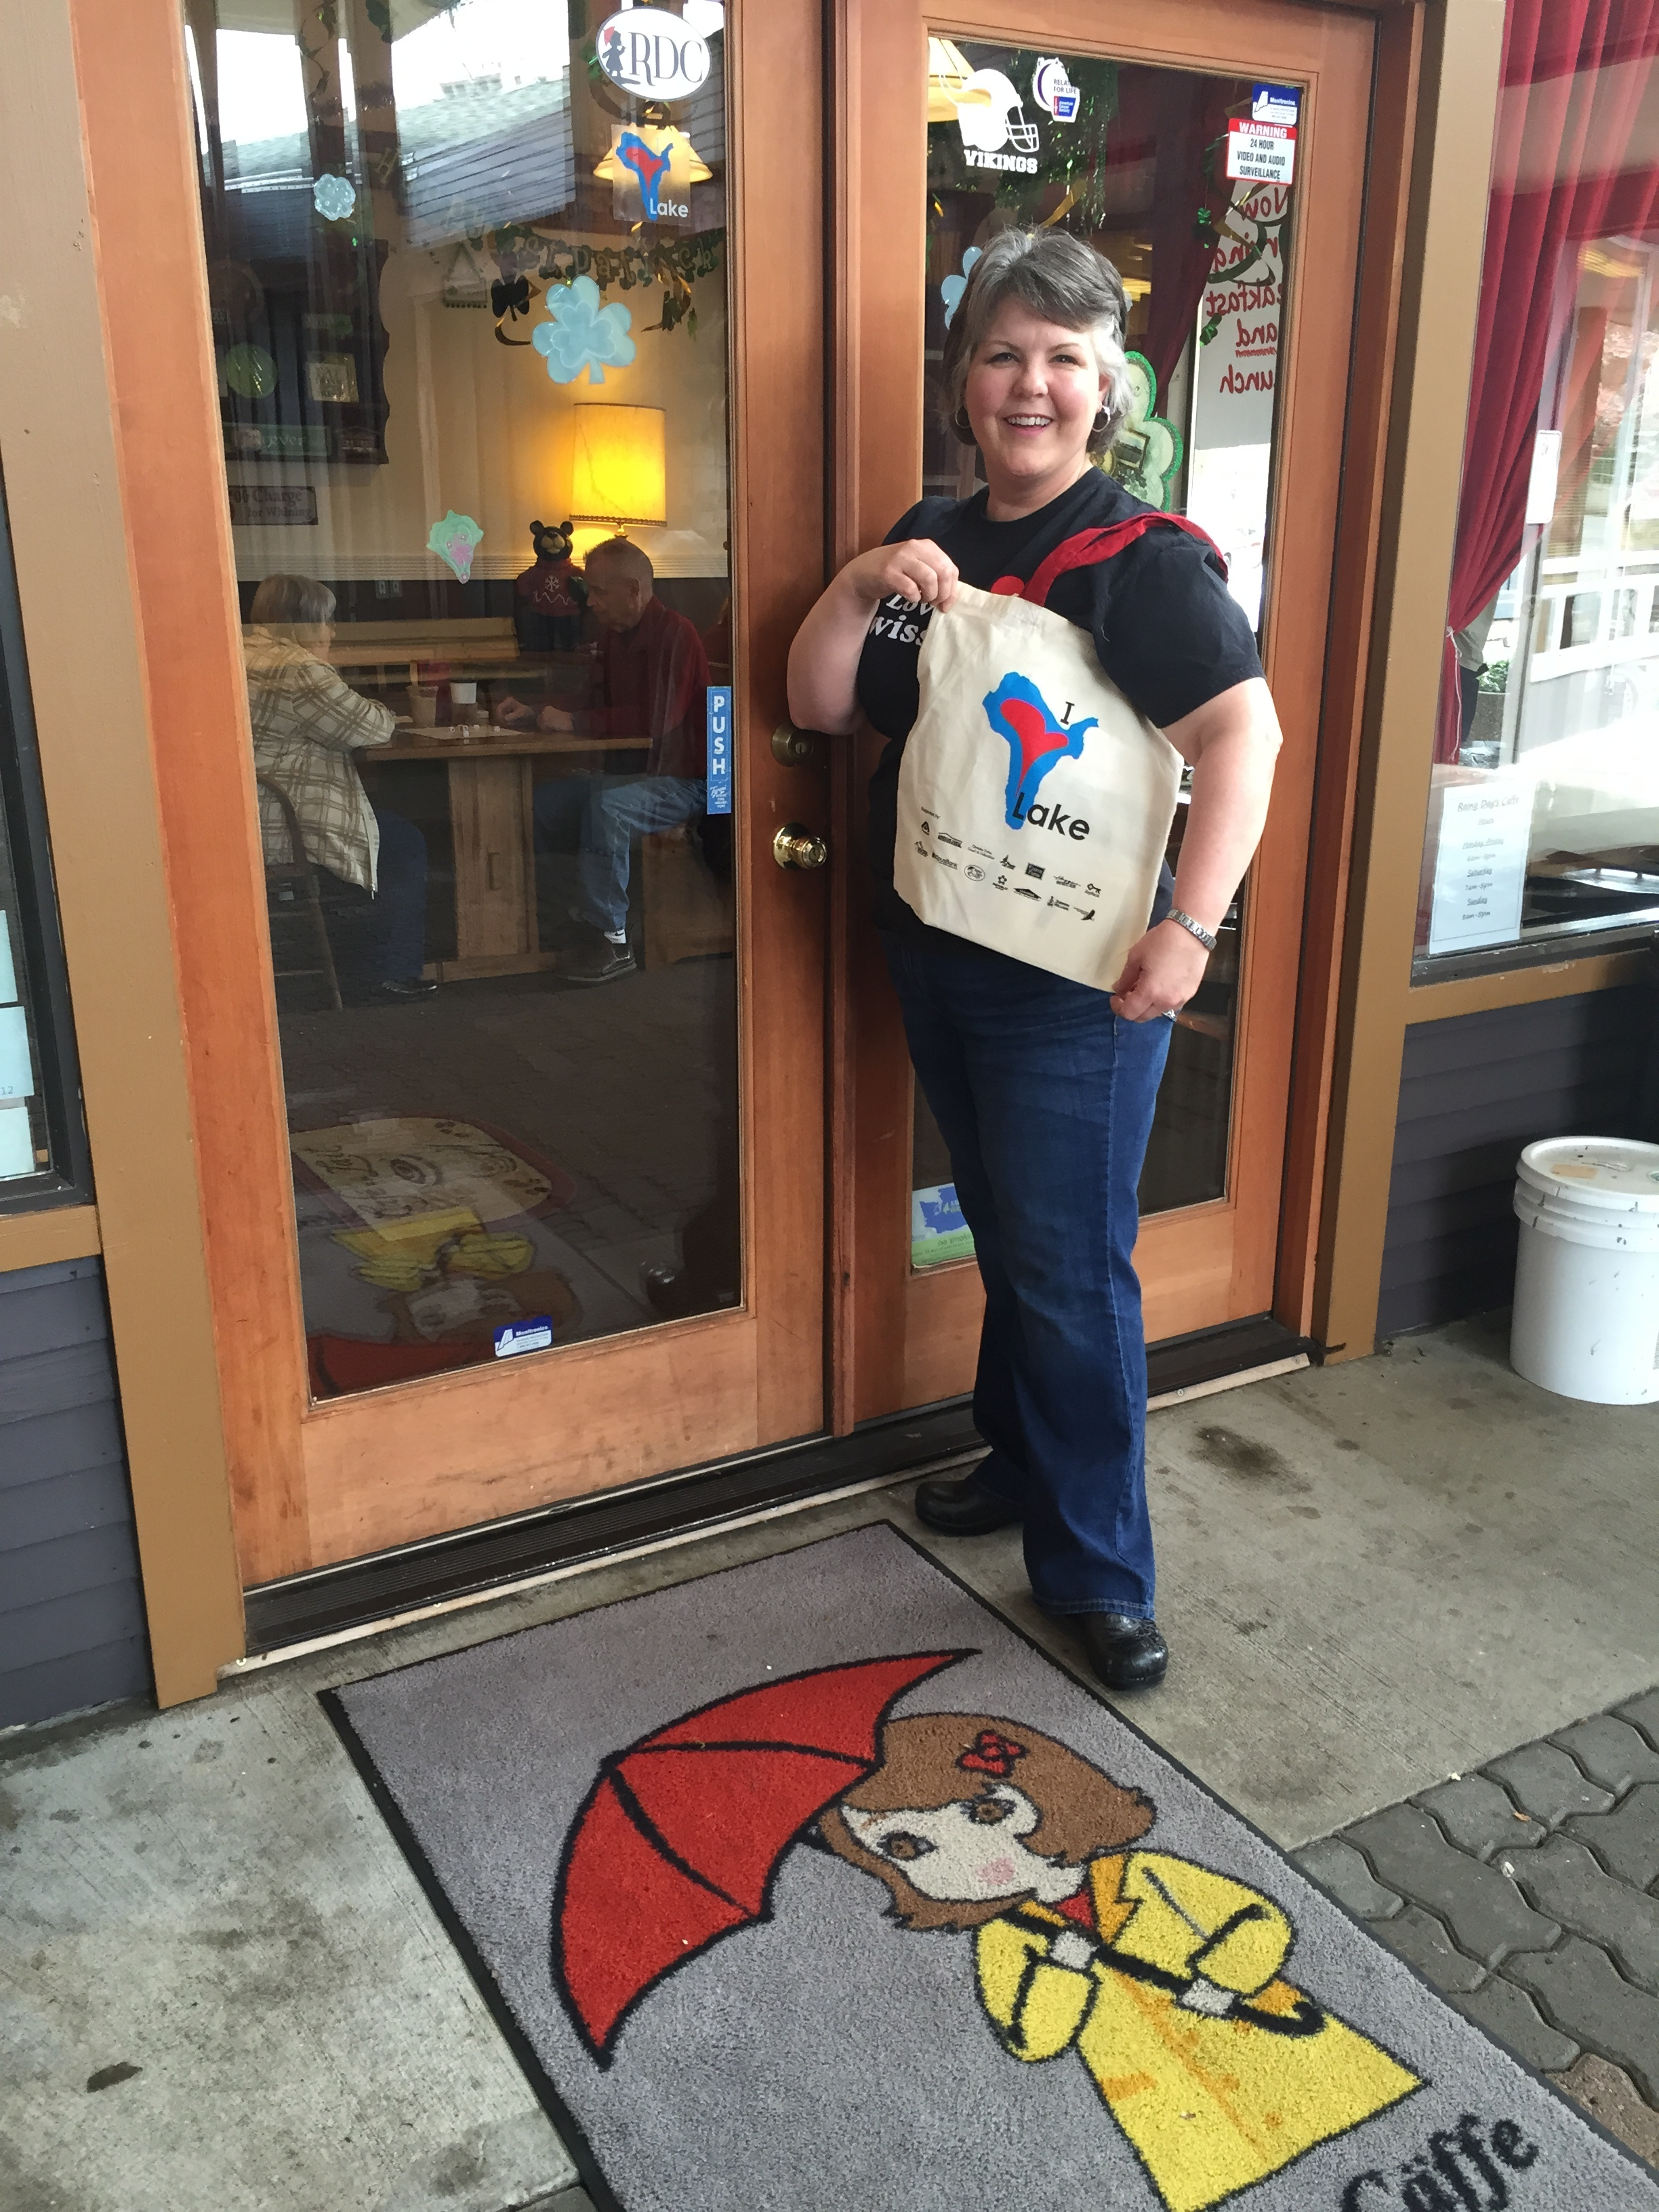 Rainy MacDuff poses with an I Love Lake tote bag outside of her cafe.